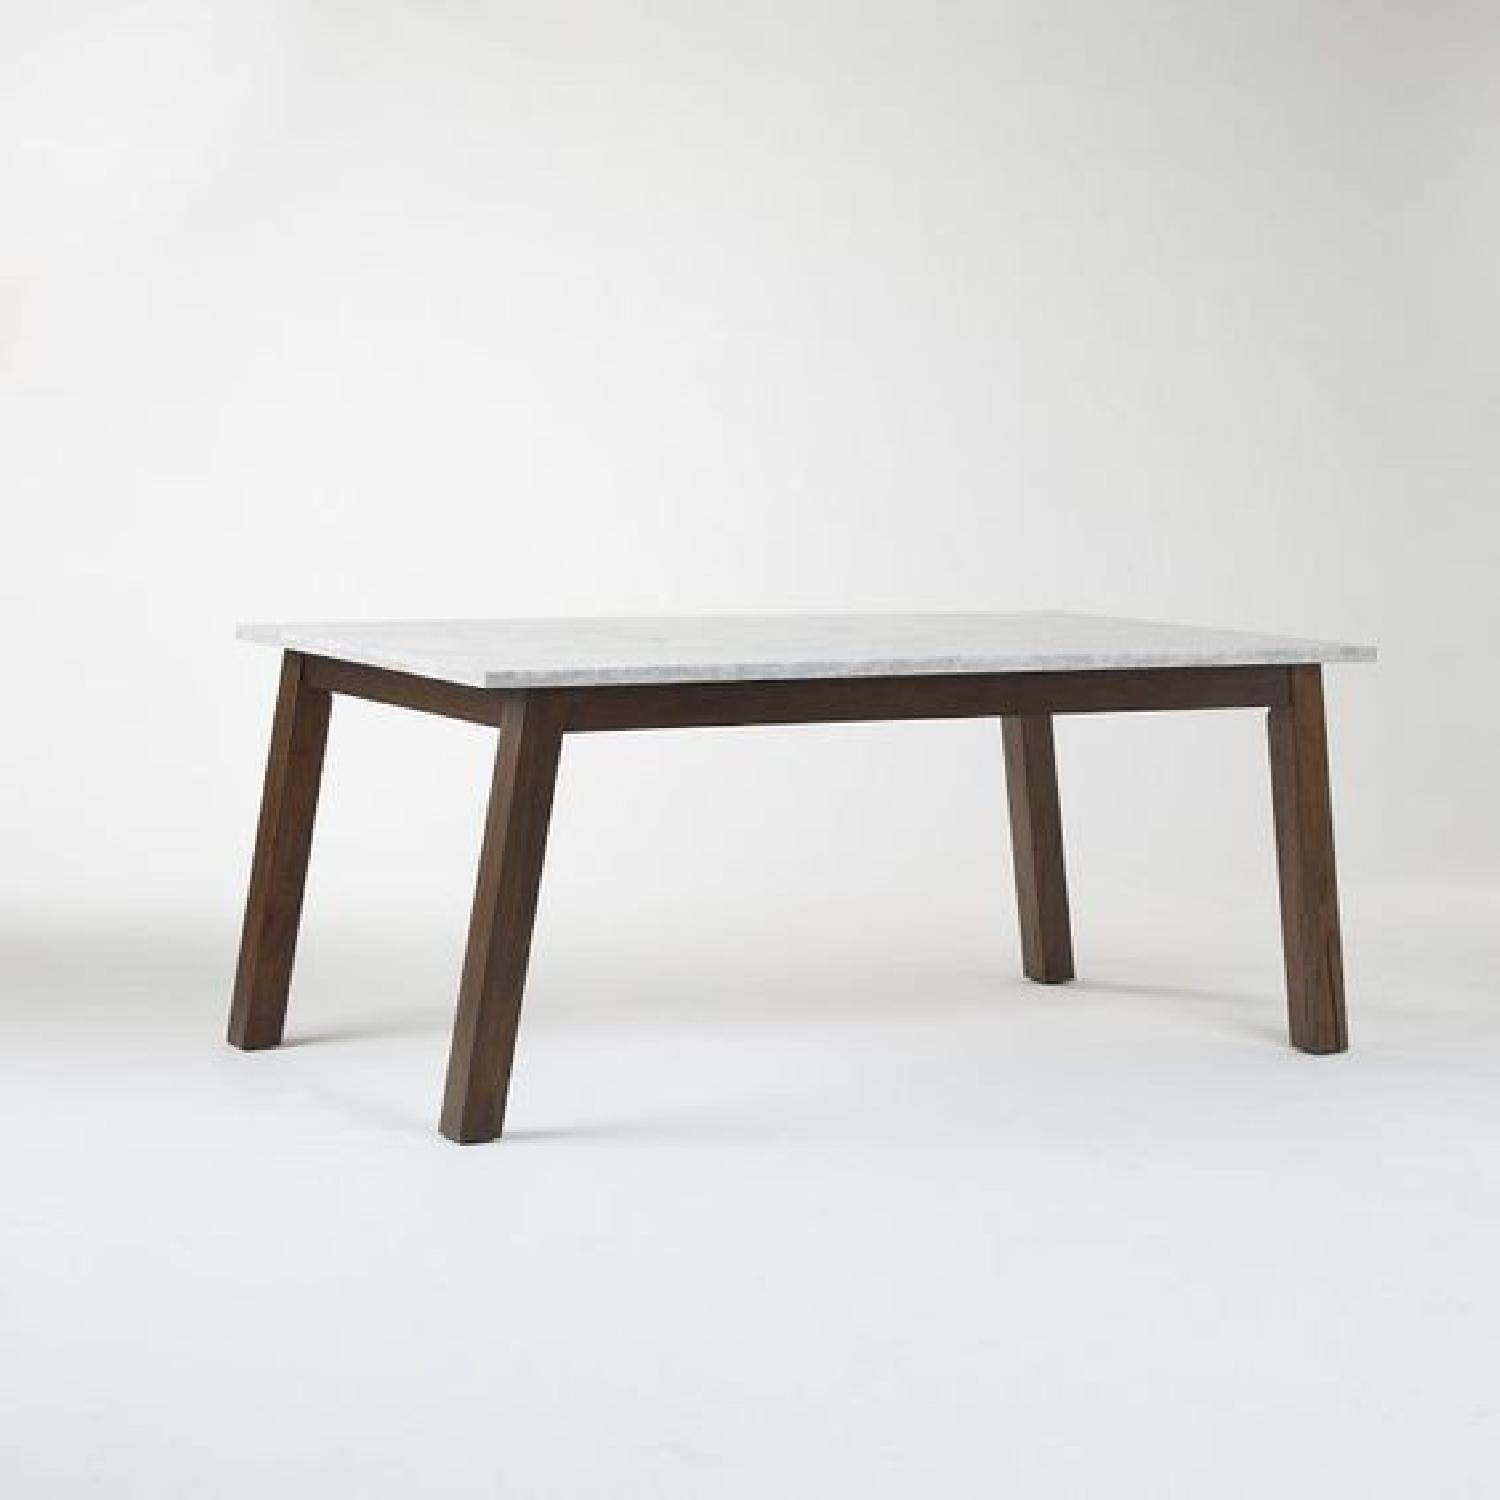 West Elm Marble & Wood Rectangular Dining Table - image-6